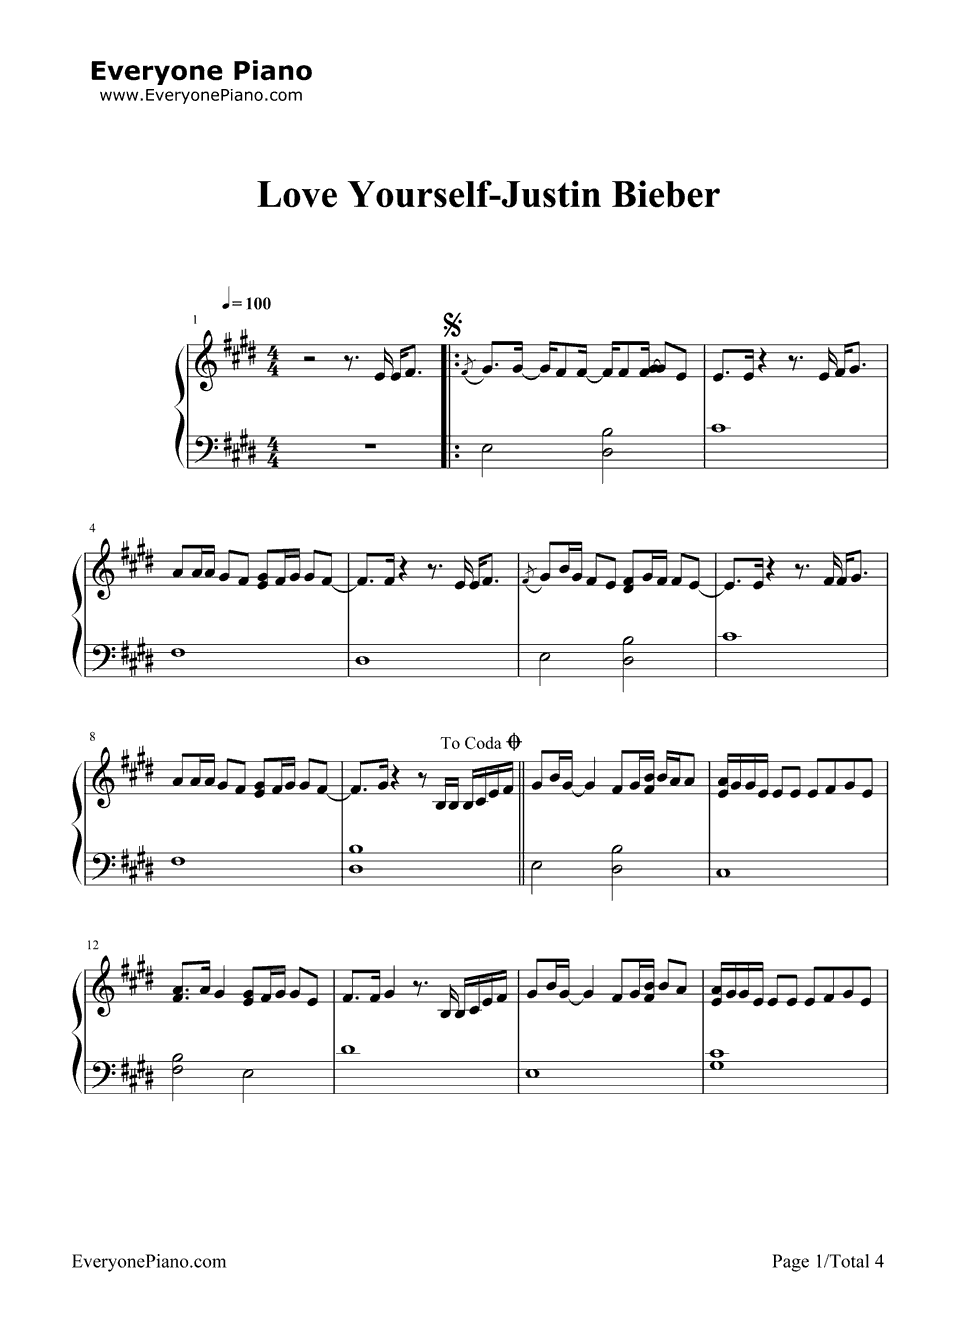 Love Yourself Justin Bieber演唱 钢琴谱